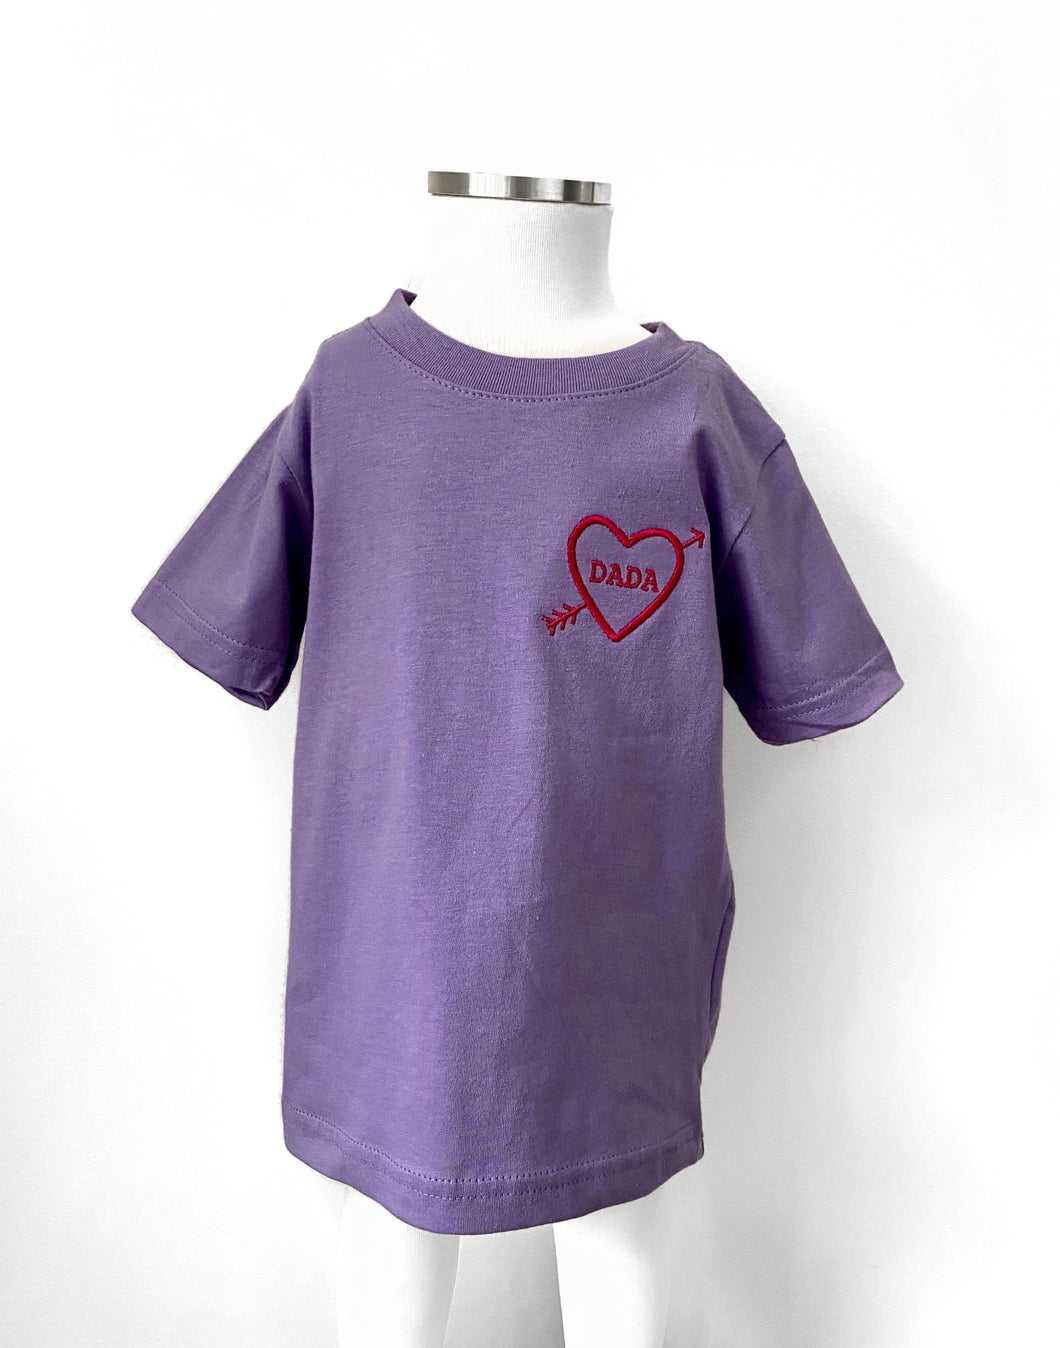 MM Dada Lavender T-shirt